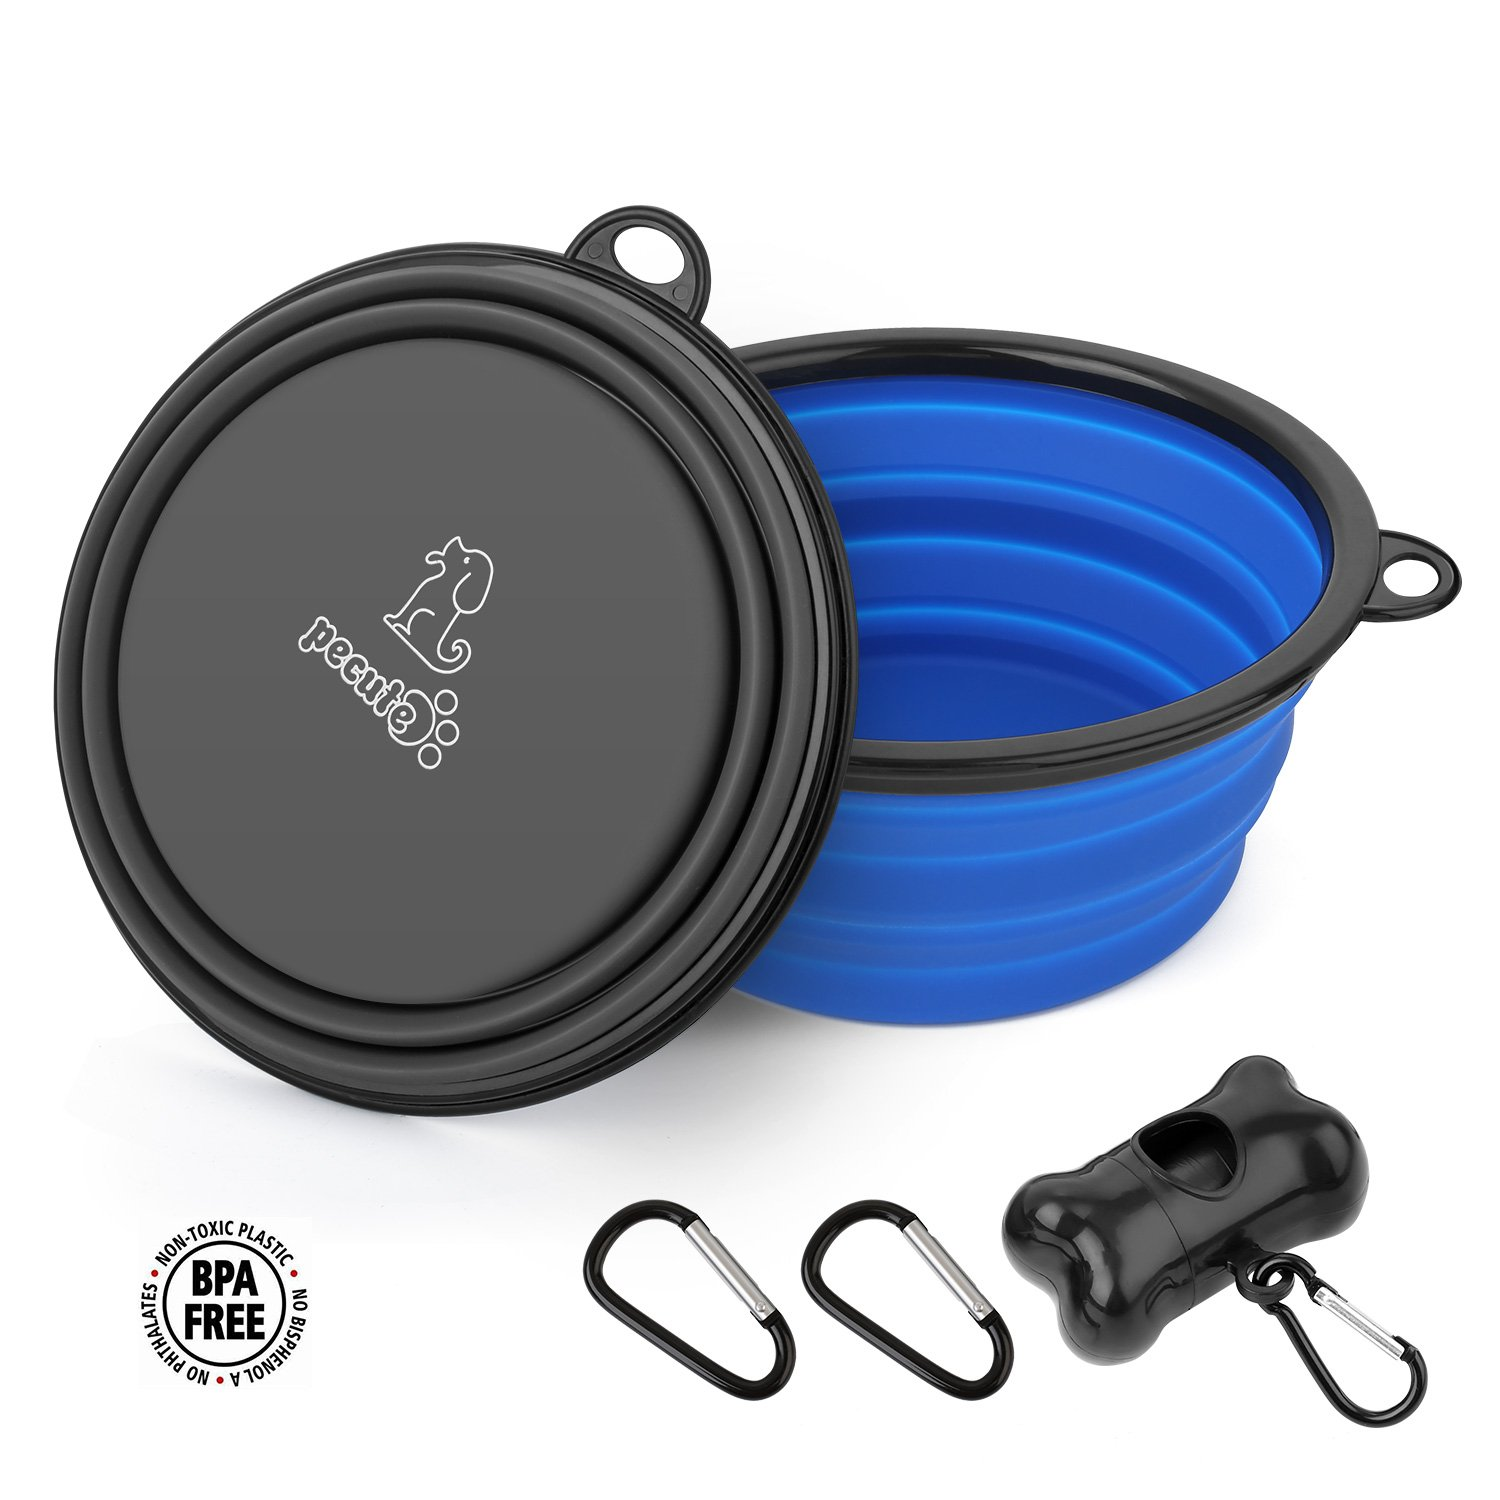 Collapsible Dog Bowl 2 Pack for Large & Small Pet Feed Food Water Feeding Silicone Foldable Expandable Portable Travel Camping Bowl with 2 Carabiner Blue and Gray